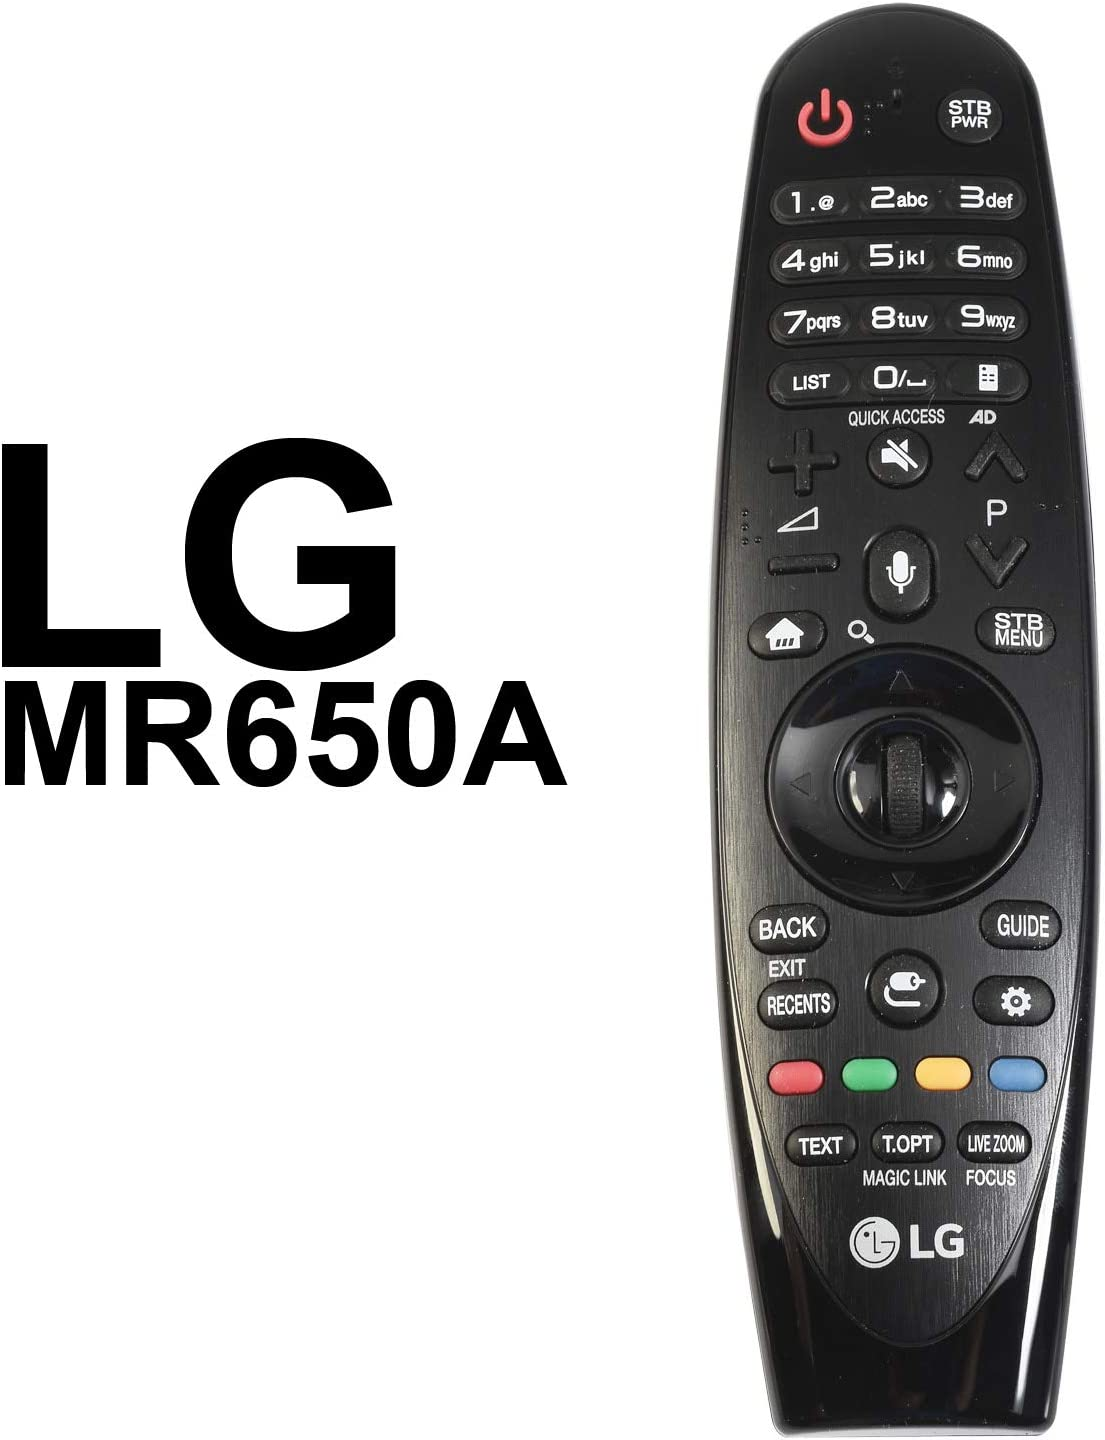 MR605A AN-MR650A Replacement Magic Remote Control for LG Smart Television 1609-REV7 MBM63935971